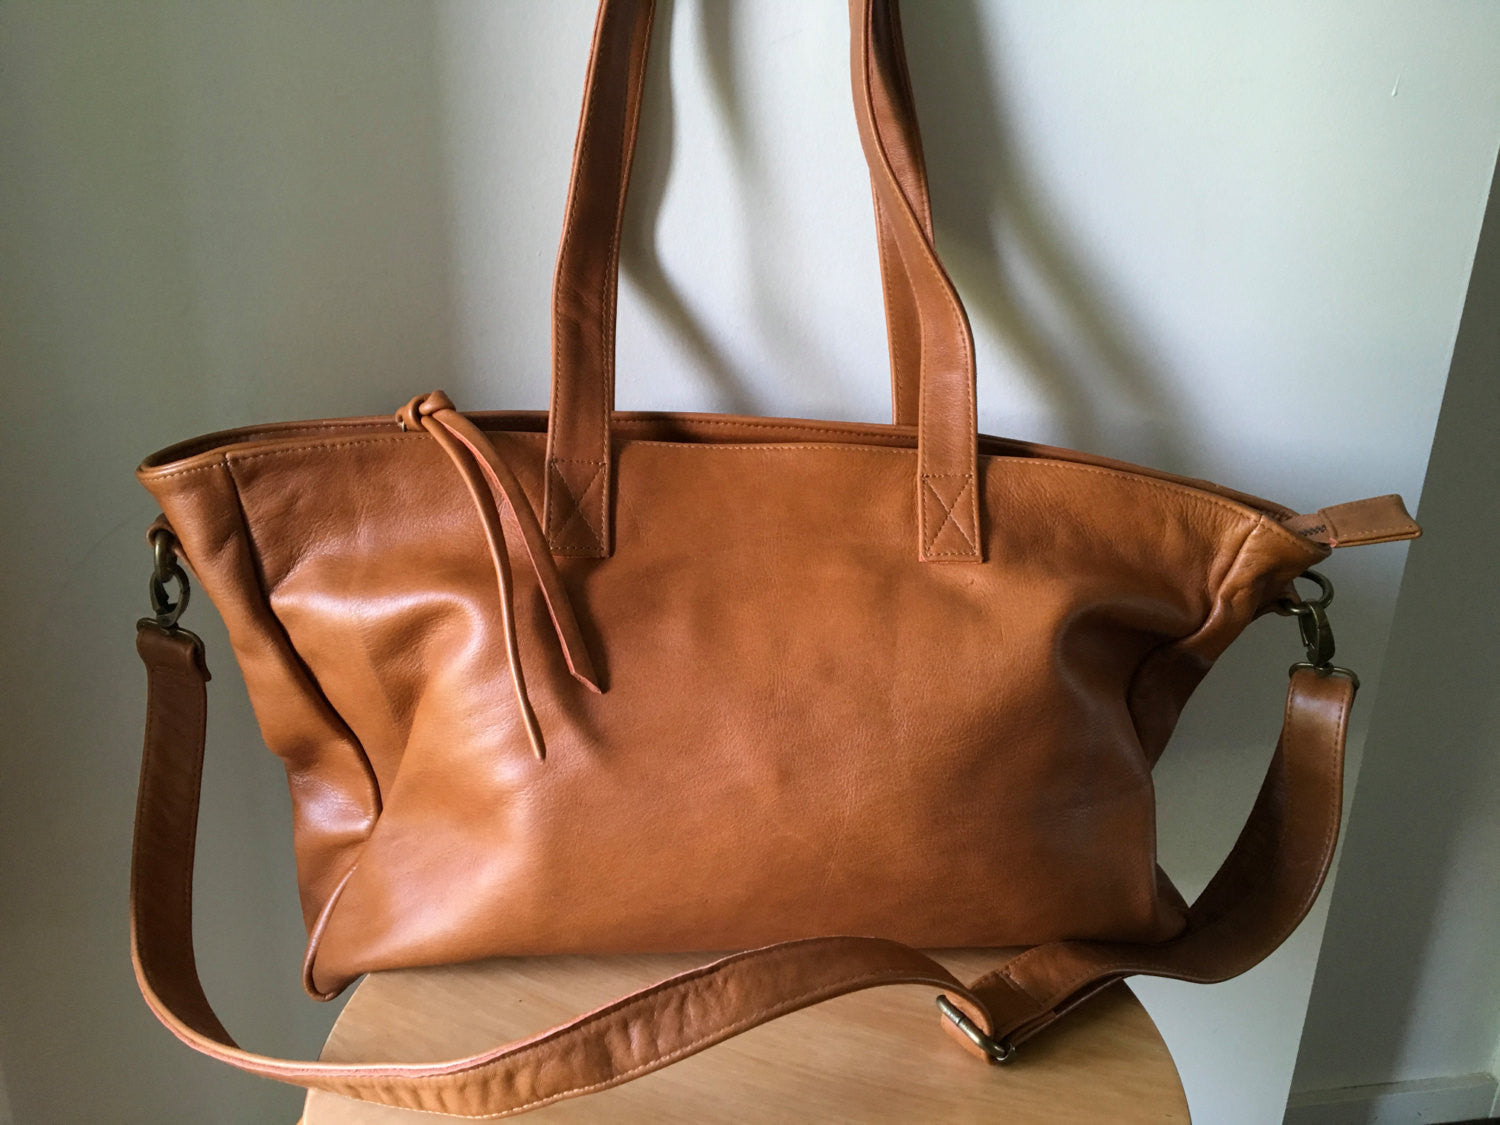 The Stretched Total-Large Tan Leather Tote with zip closure tote bag